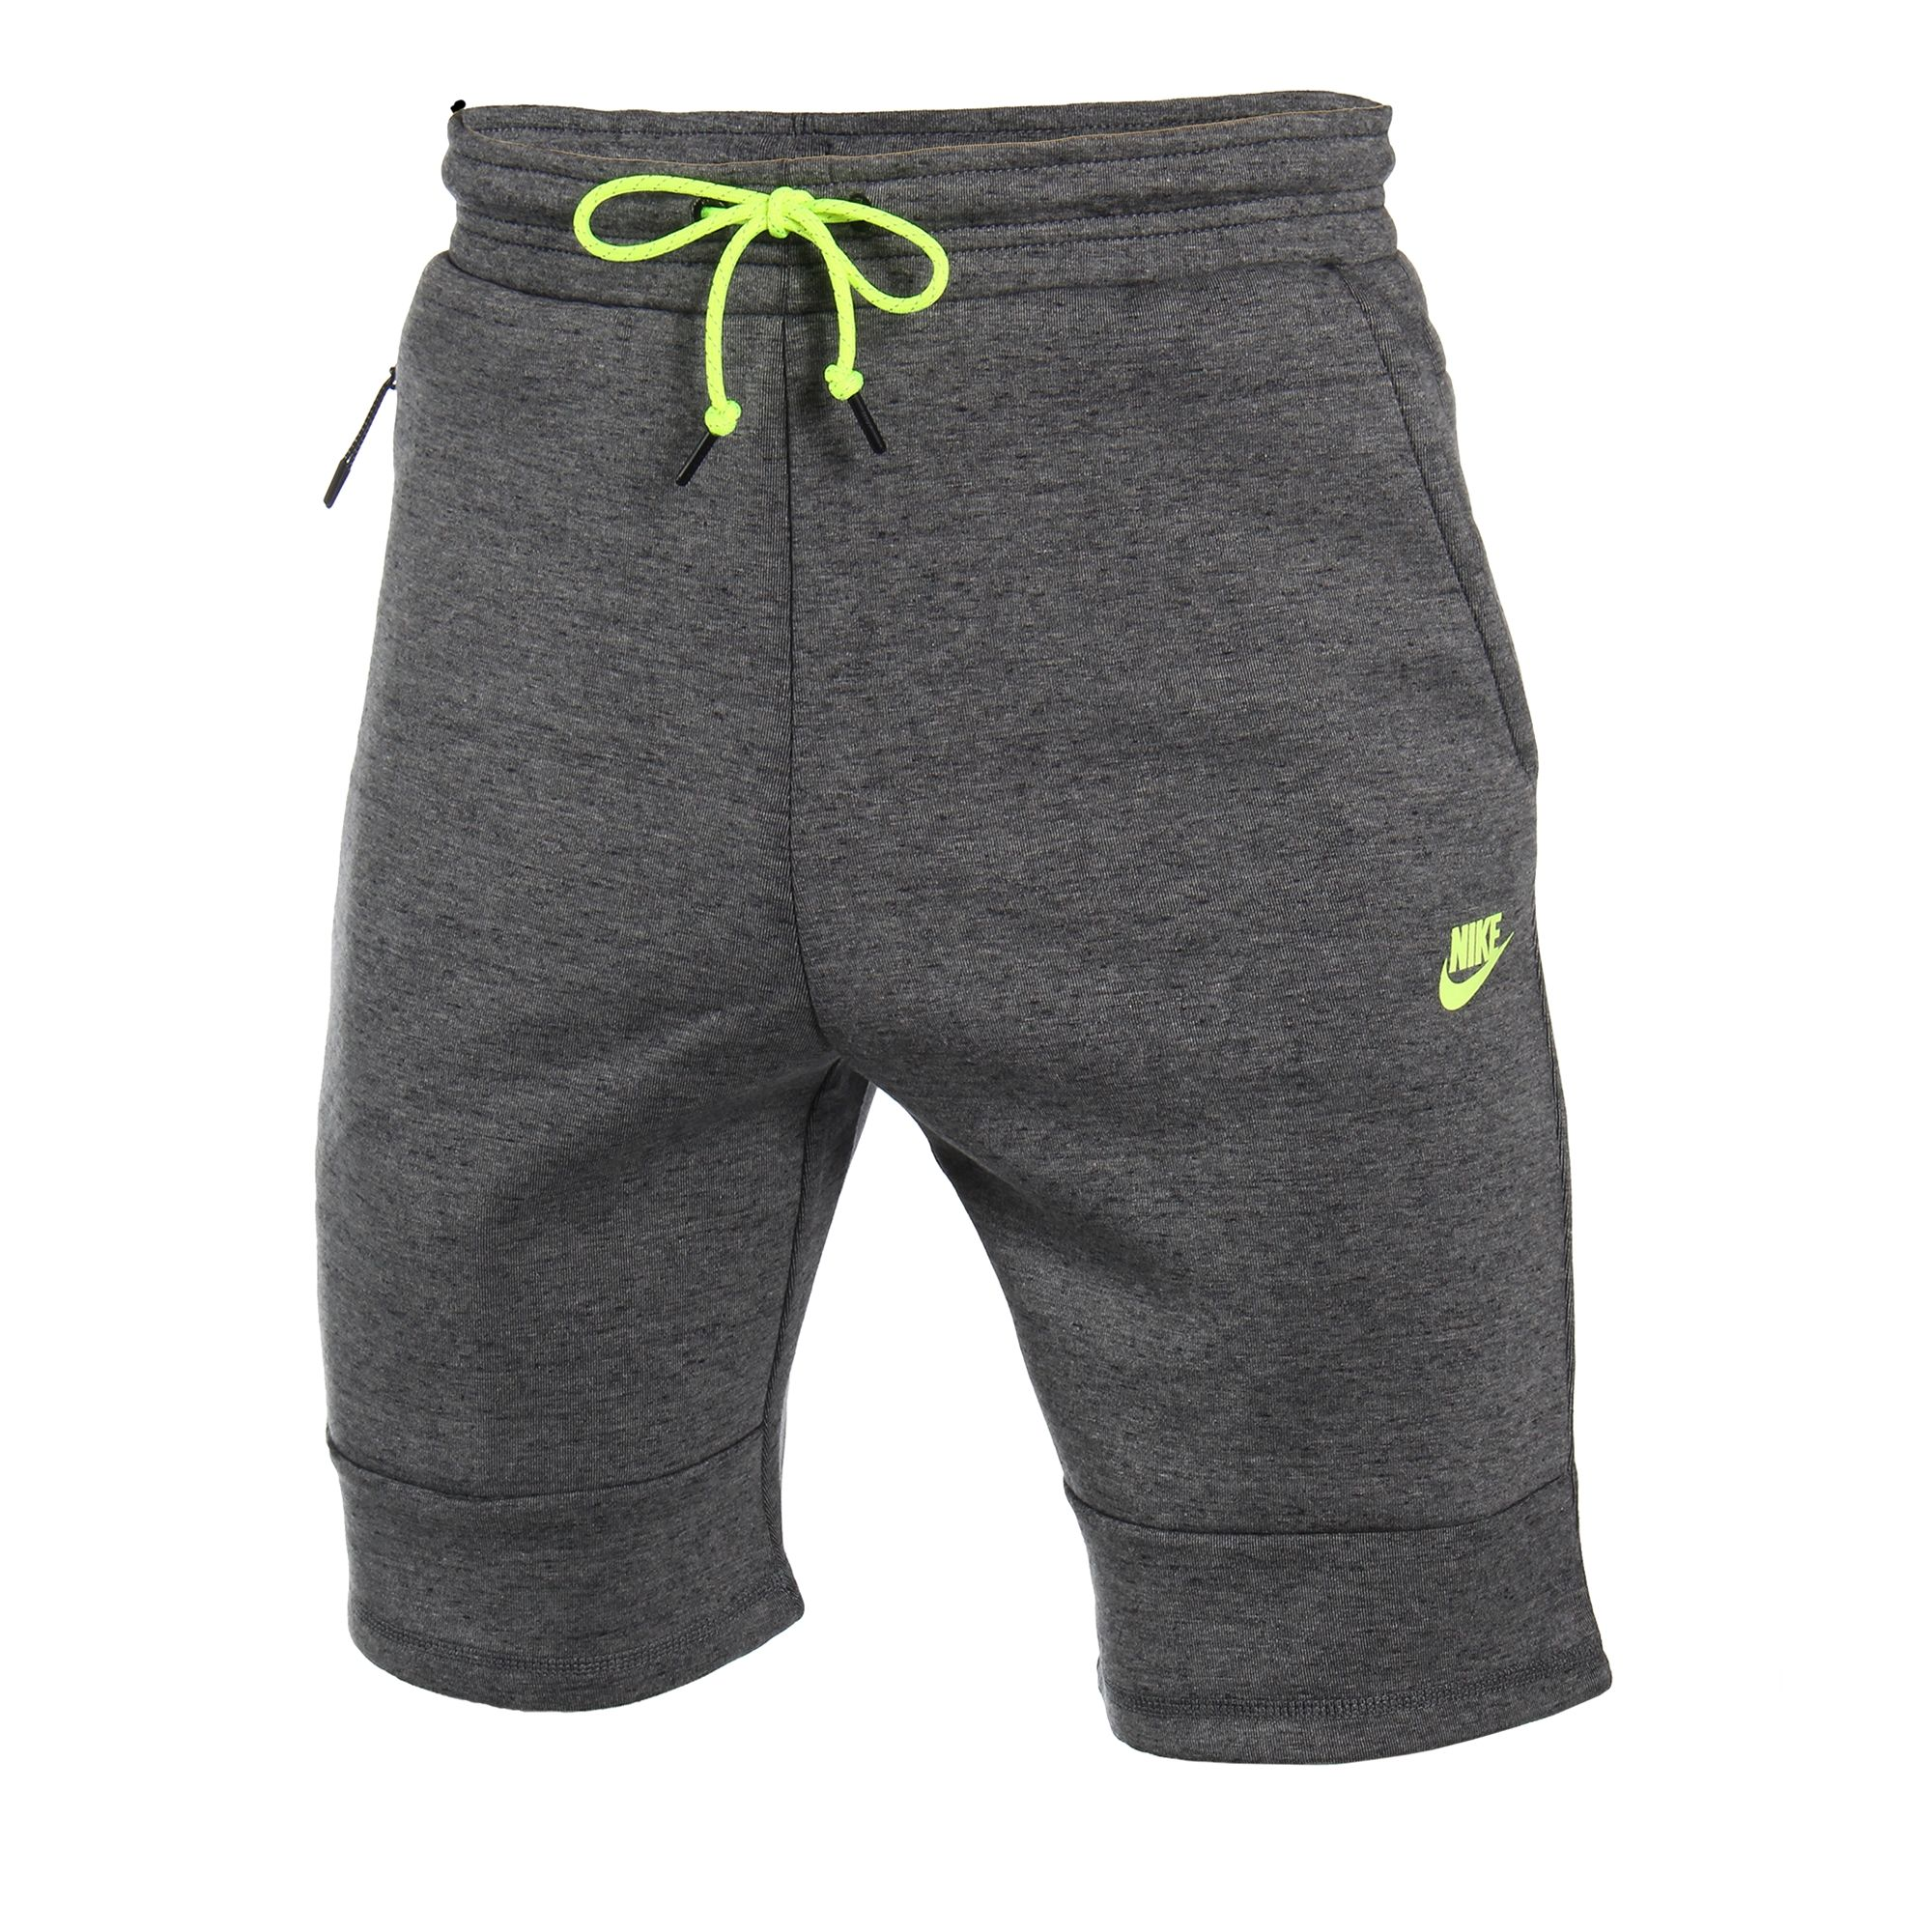 60083927b4 Shorts Masculino Tech Fleece - Nike no Nike.com.br